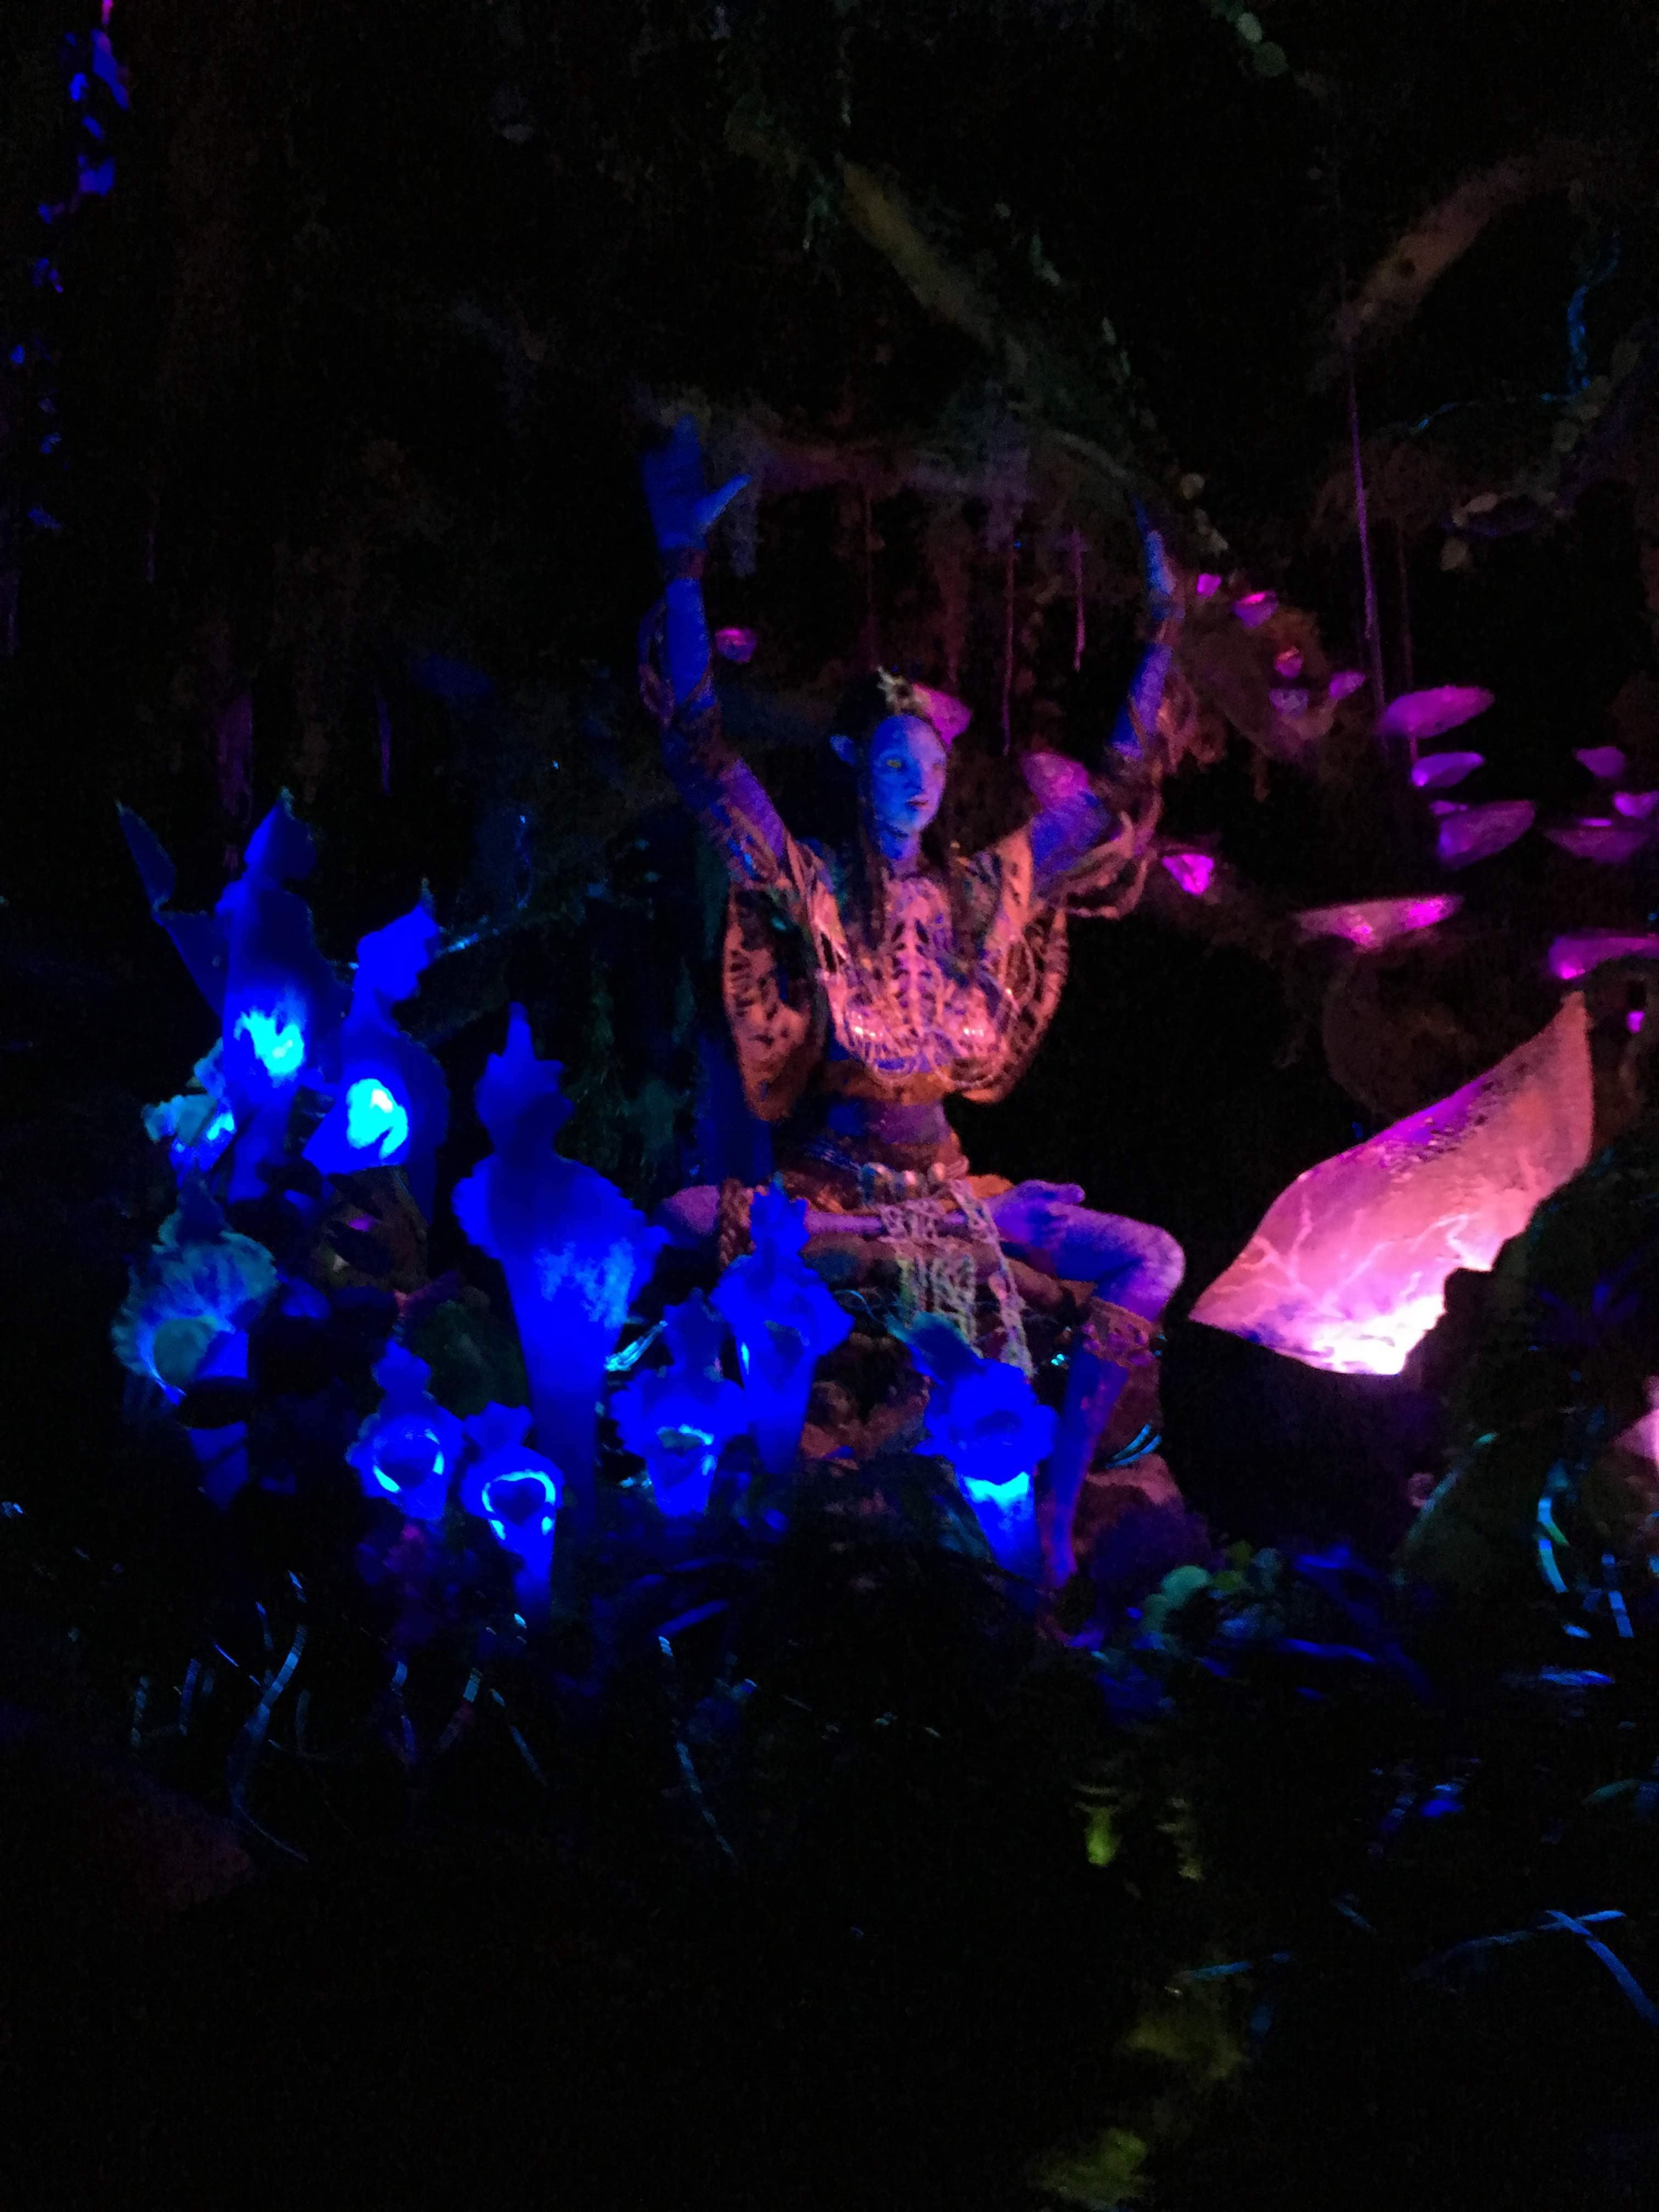 a view of the Na'avi river journey ride in Pandora, Animal Kingdom